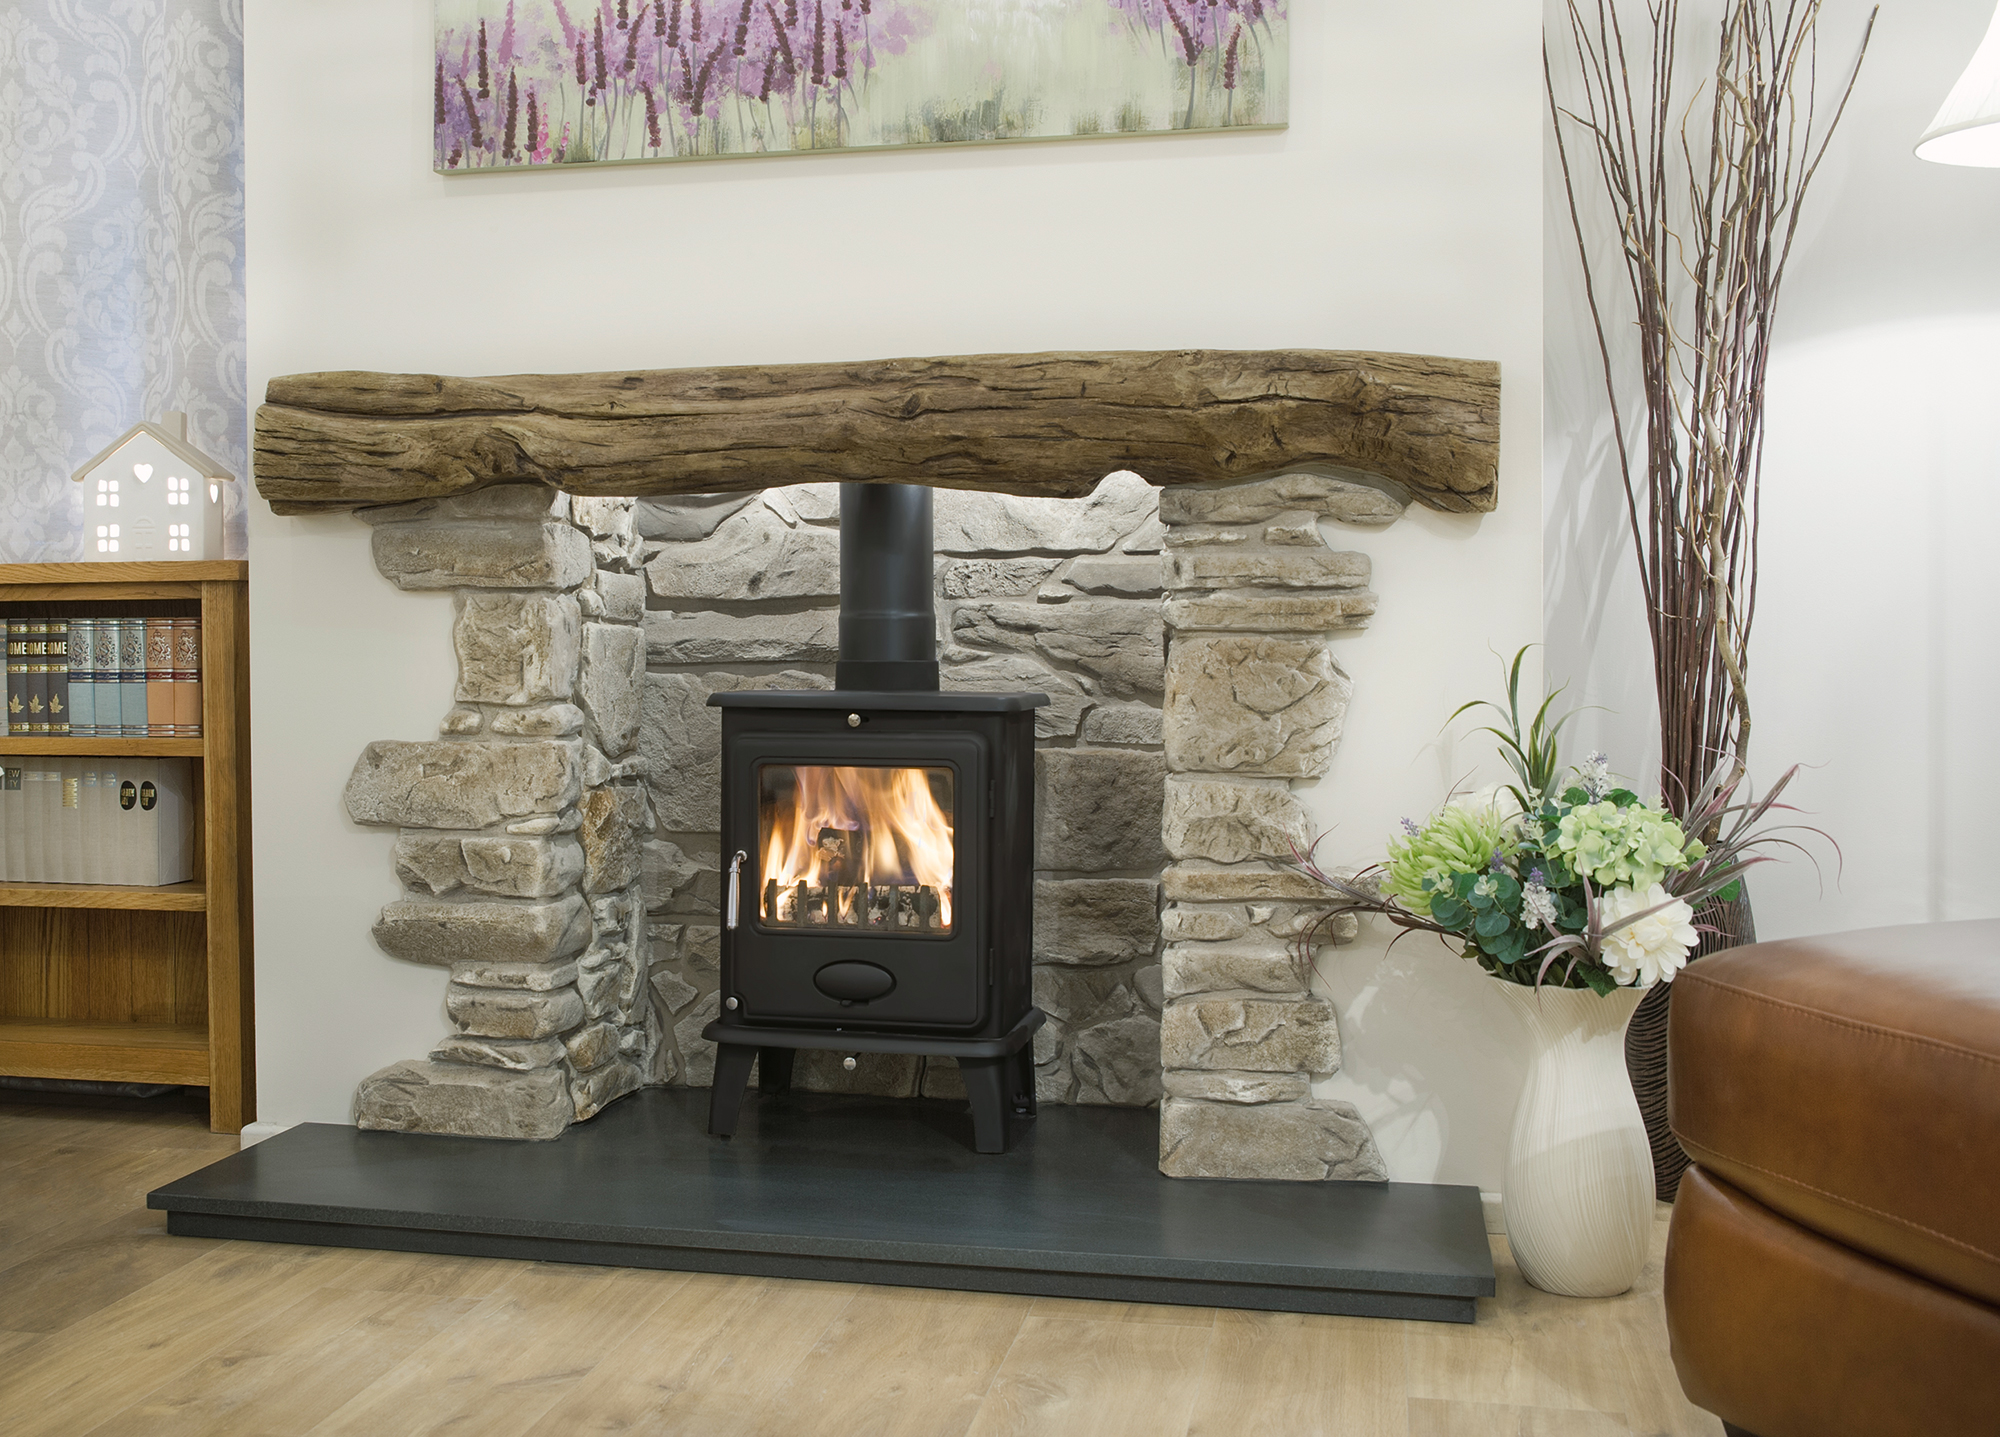 Traditional look stove installed in former fireplace space